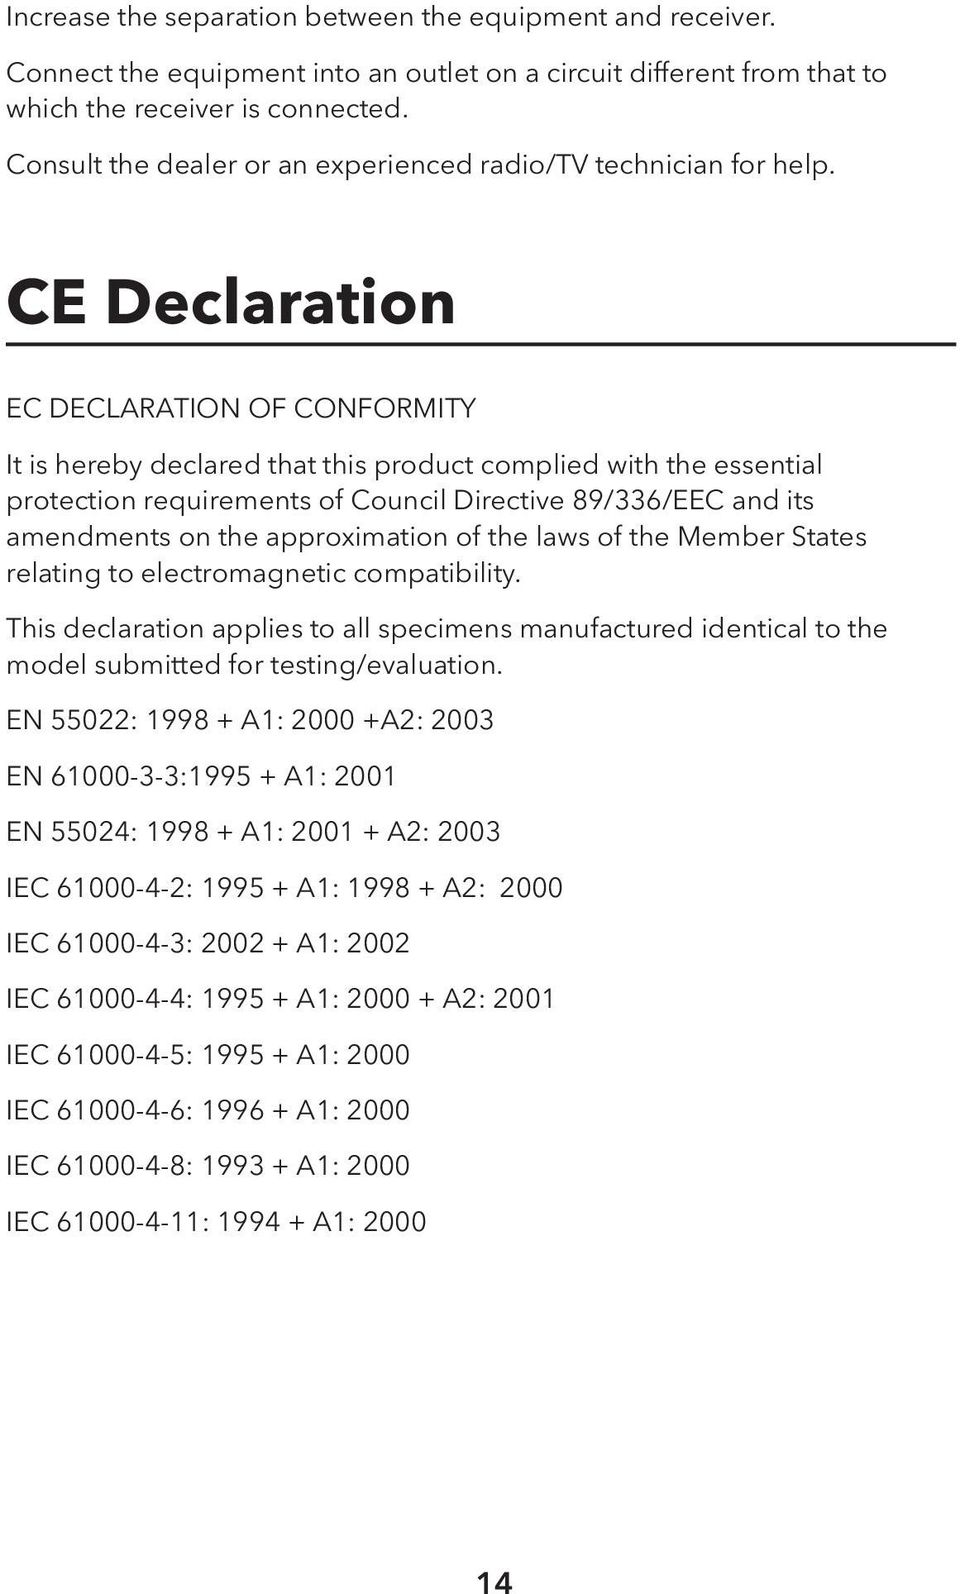 CE Declaration EC DECLARATION OF CONFORMITY It is hereby declared that this product complied with the essential protection requirements of Council Directive 89/336/EEC and its amendments on the